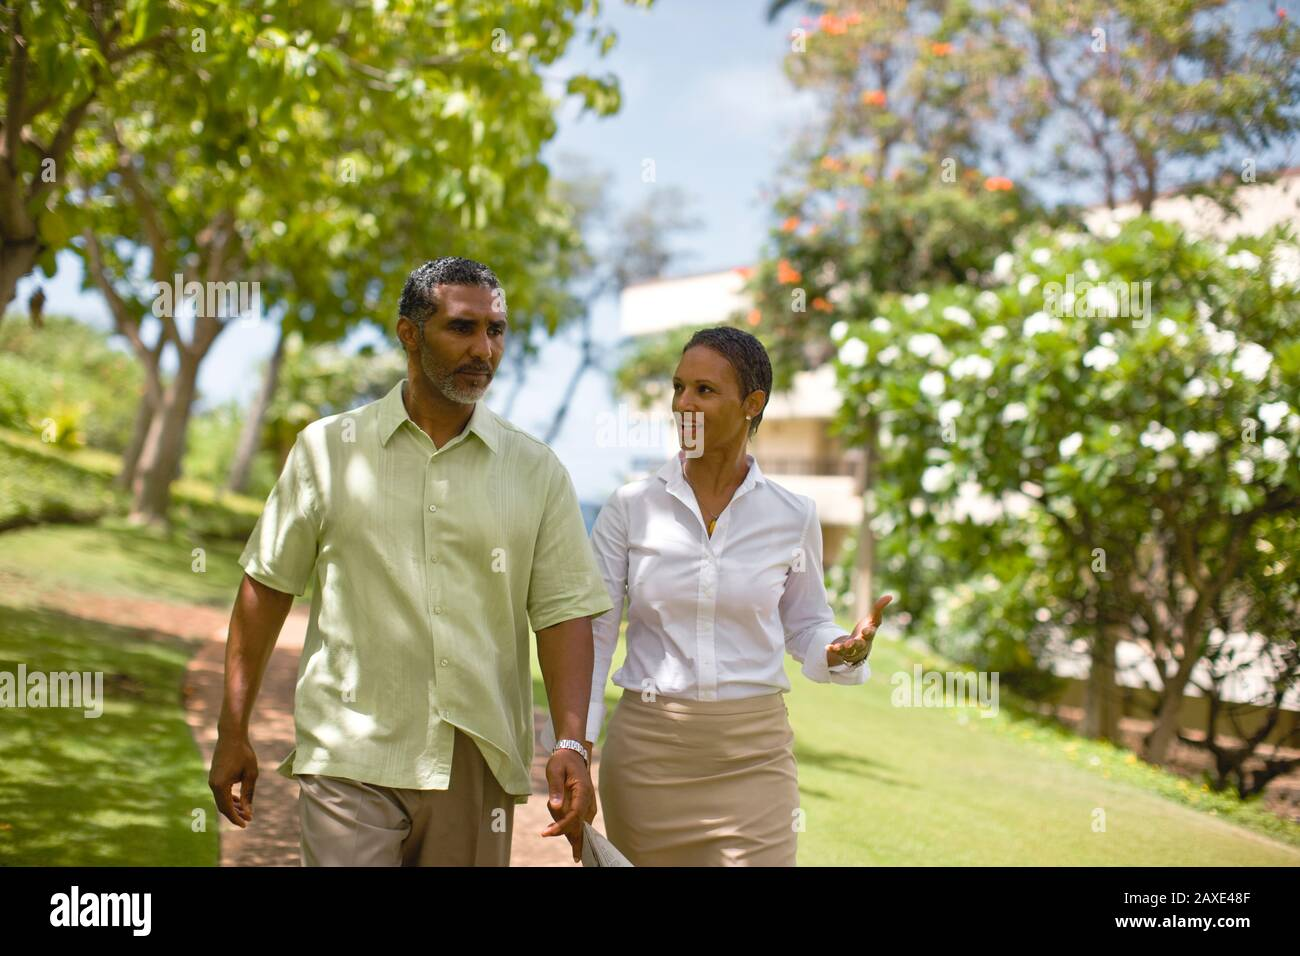 Couple in deep discussion while walking. Stock Photo